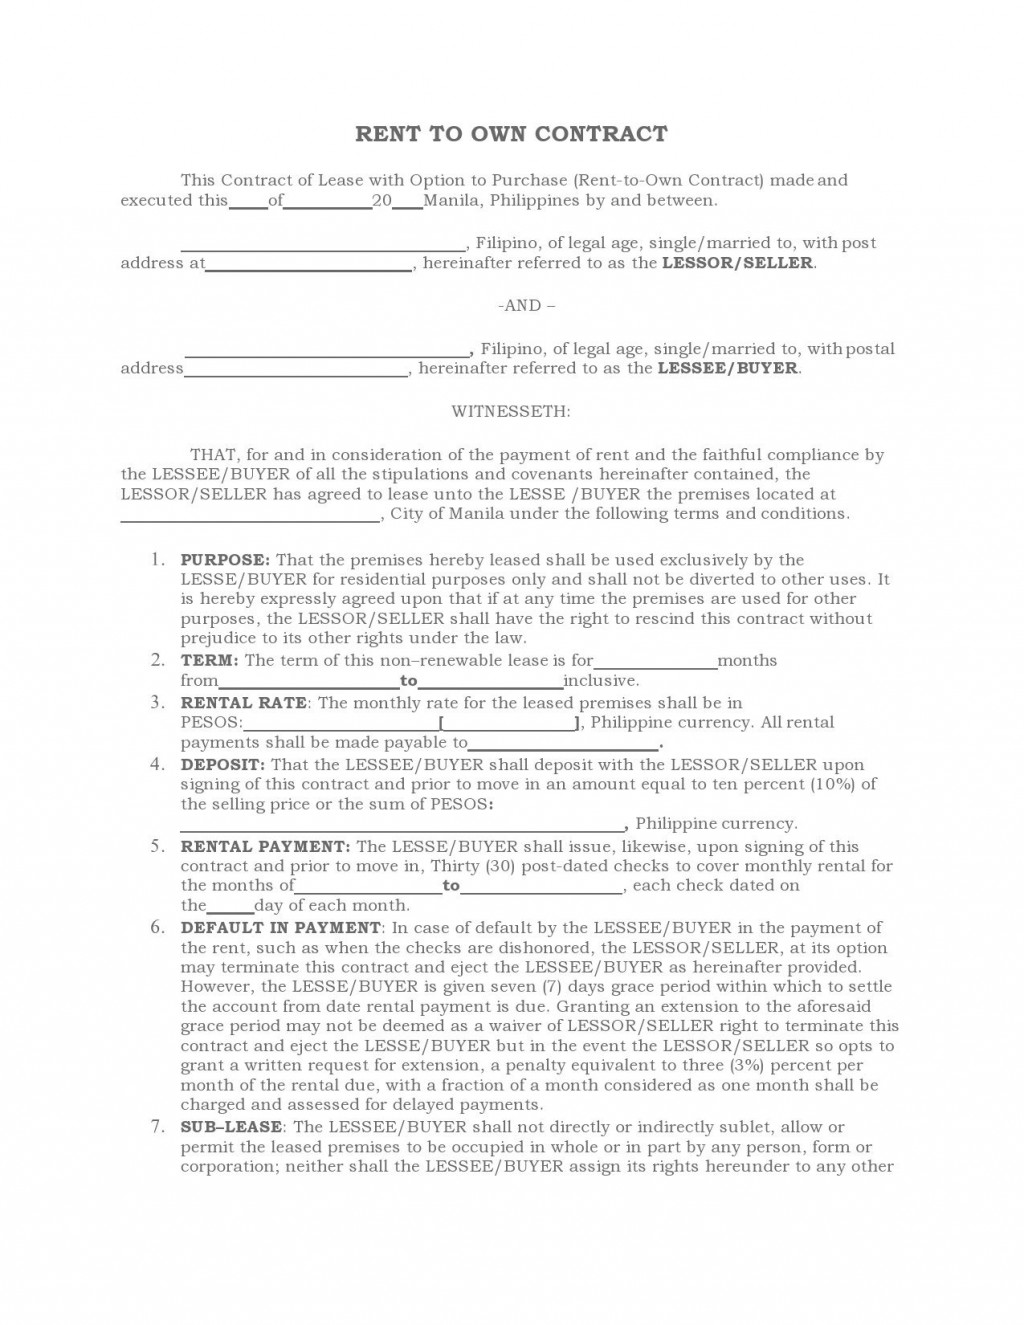 006 Excellent Rent To Own Contract Template Philippine Image  Philippines SampleLarge